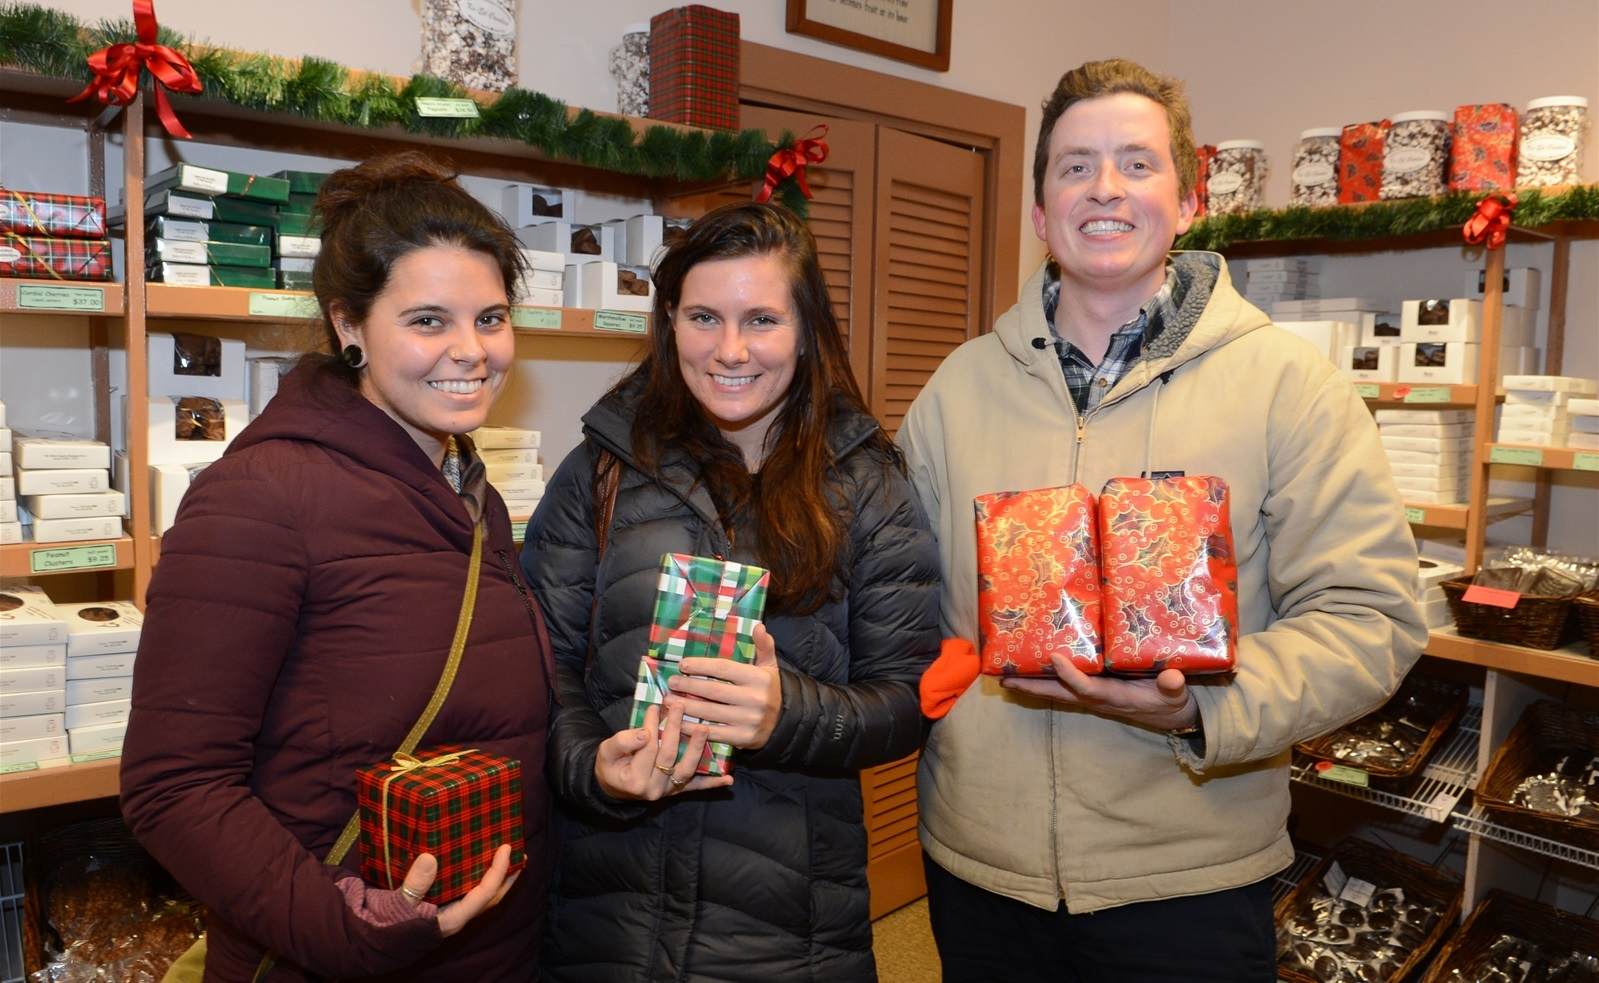 Smiles at Shop South Buffalo from 2014. (Nancy J. Parisi/Special to The News)